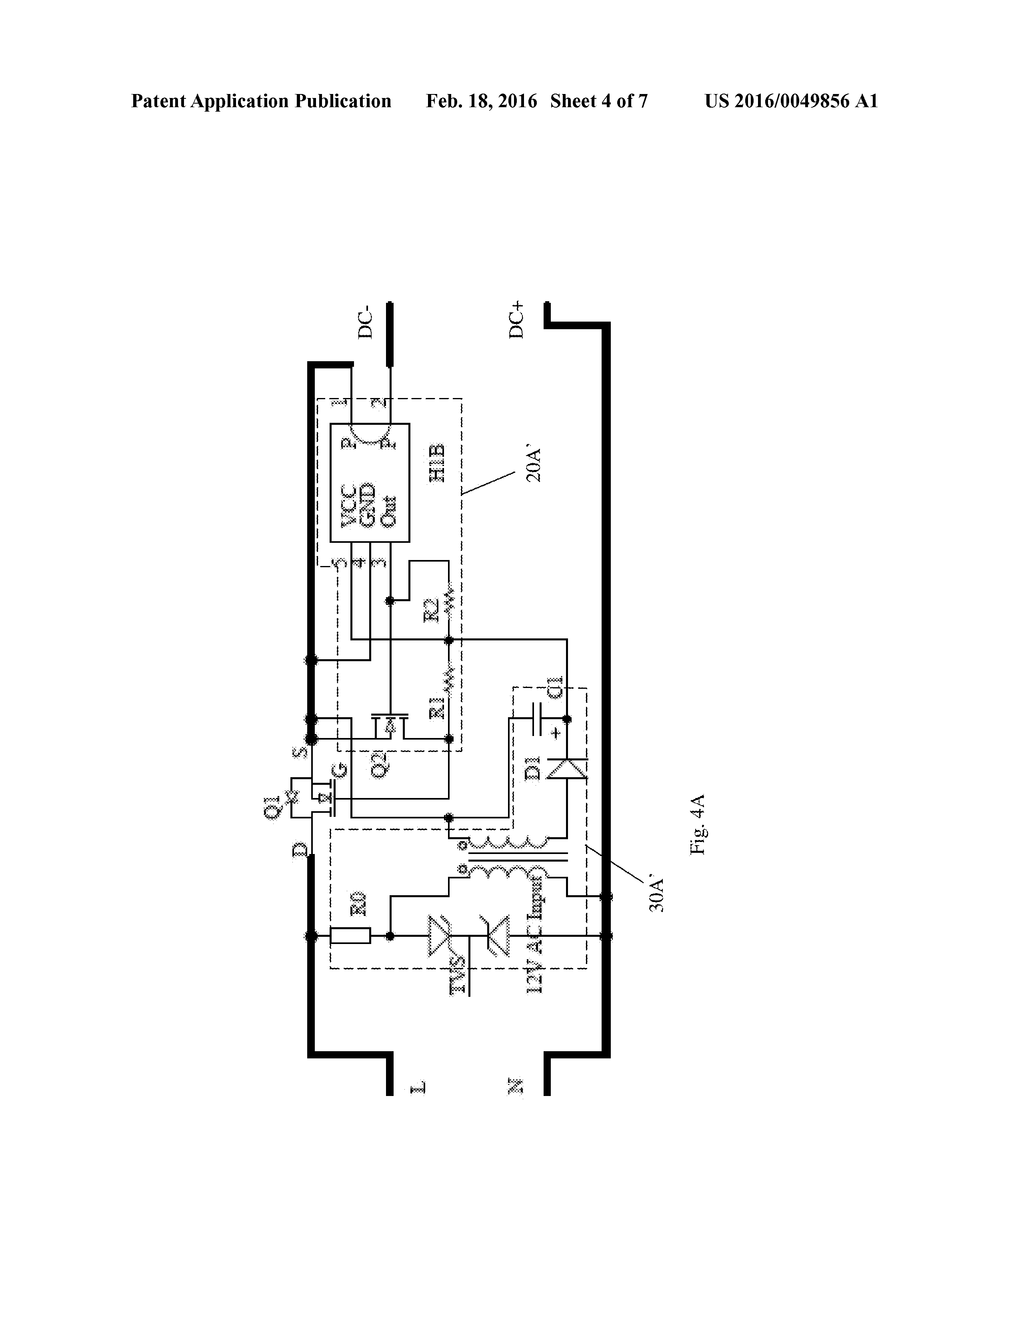 Hall Effect Switch Diagram Explained Wiring Diagrams Sensor Magnet Detector Module 14corecom Active Switching Rectifier Employing Mosfet And Current Based Relay